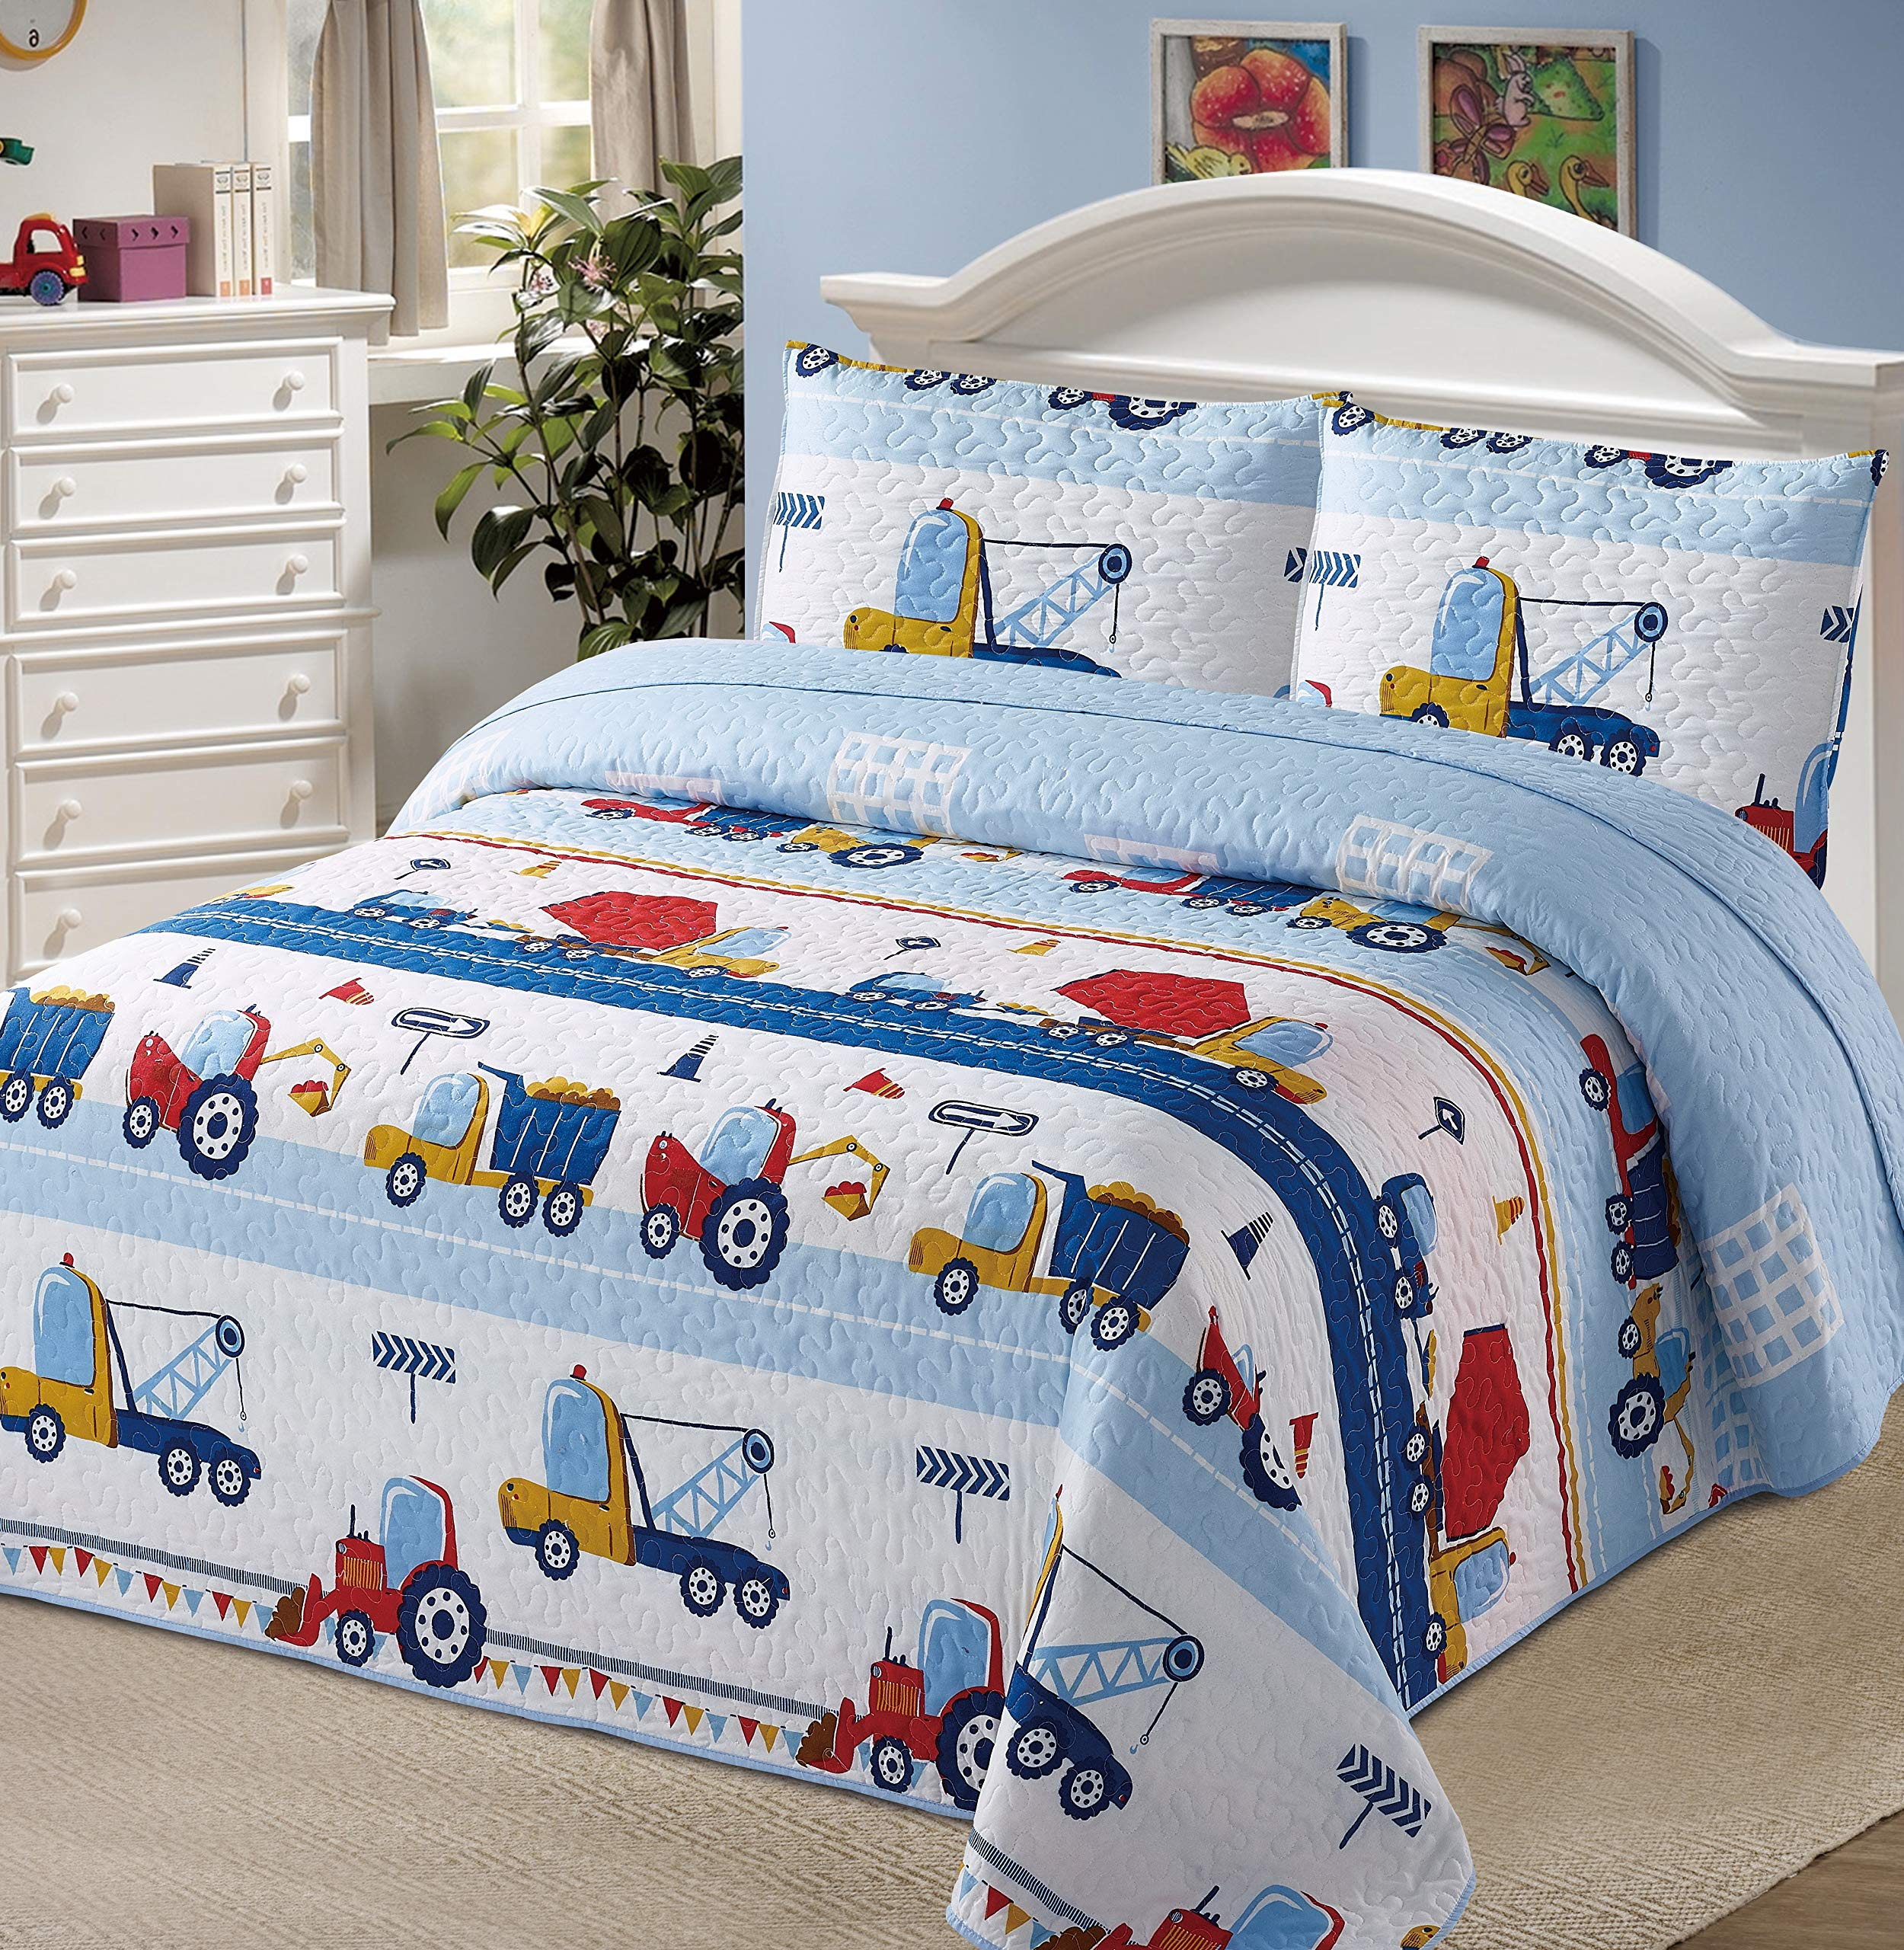 Better Home Style White Blue Red Construction Site Kids/Boys/Toddler Coverlet Bedspread Quilt Set with Pillowcases and Tractor Dump Truck Cement Mixer and Excavator # 2018291 (Queen/Full) by Better Home Style